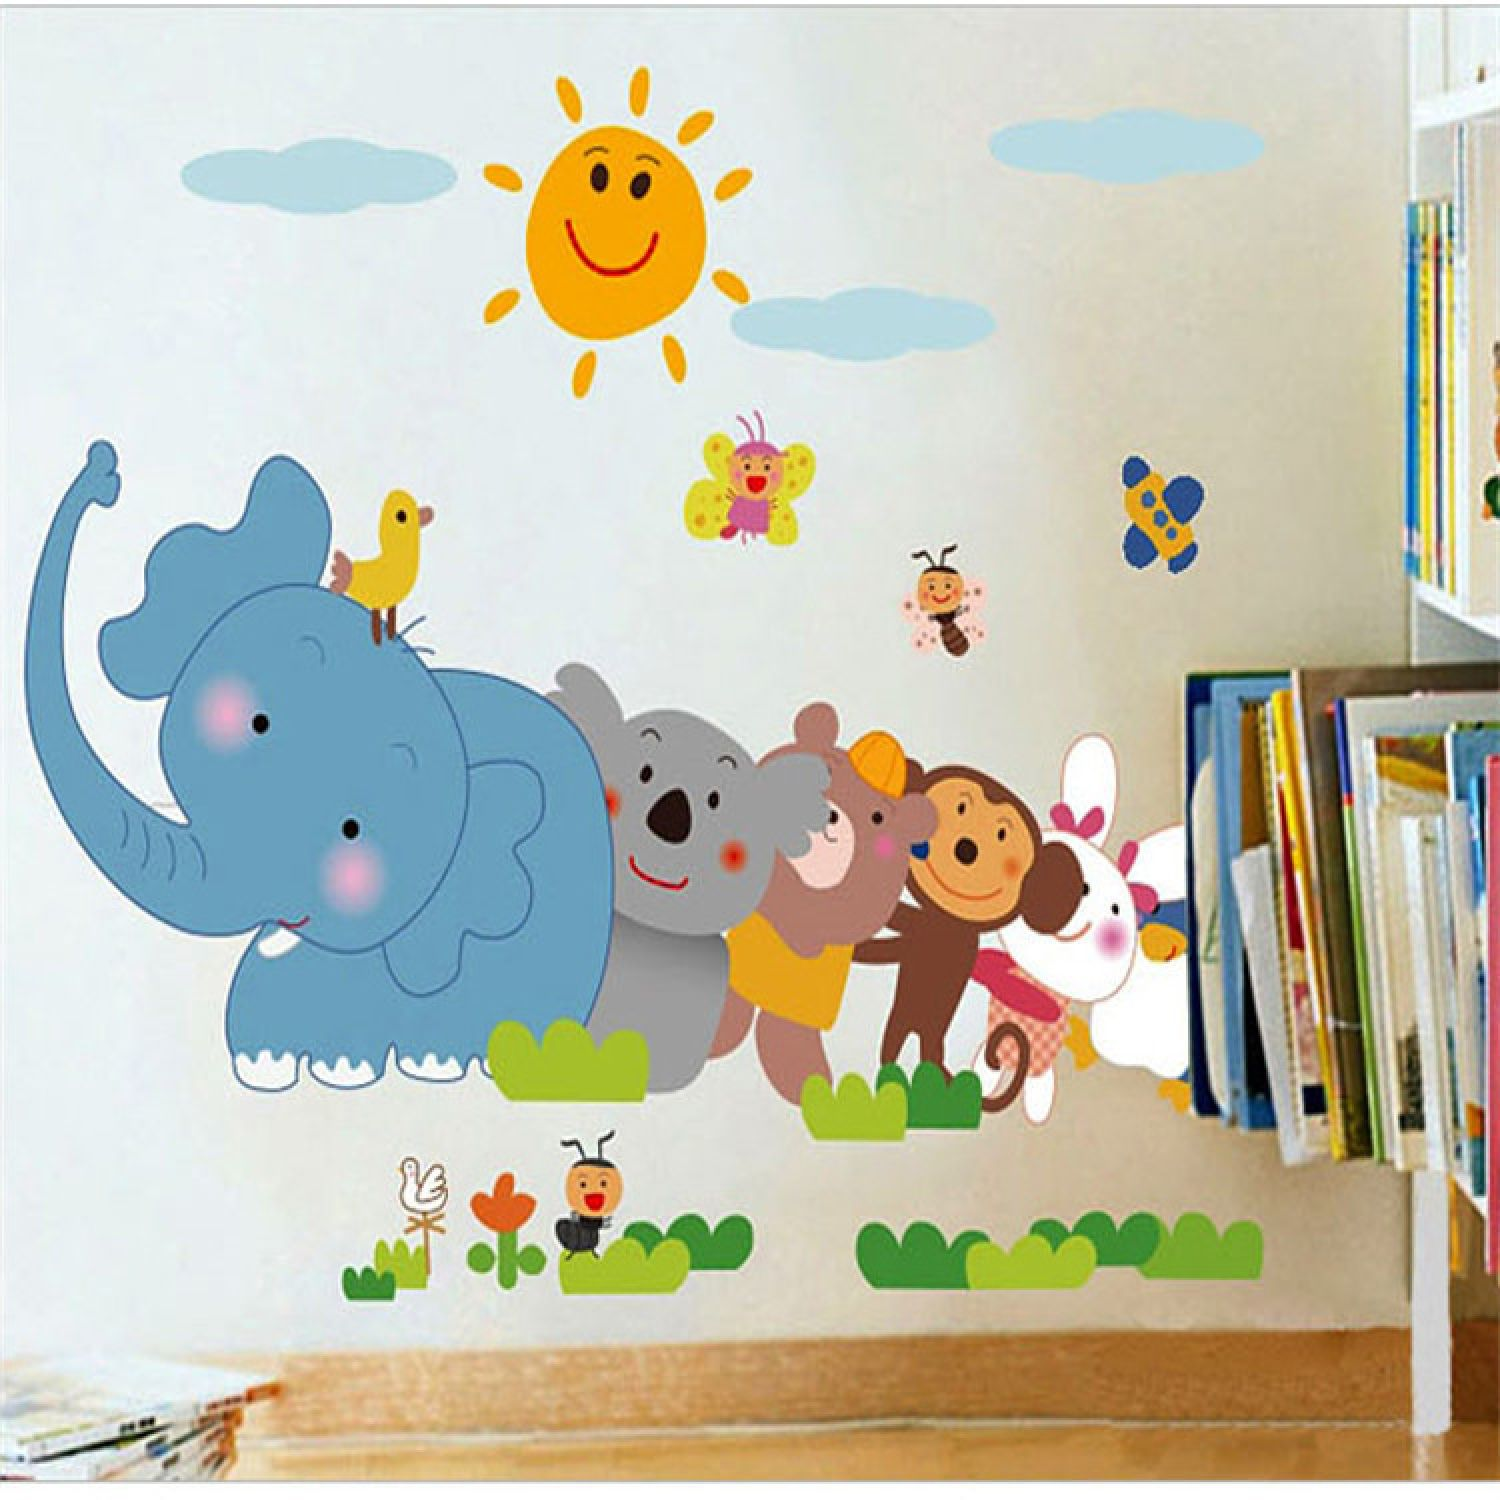 kinder wandsticker tiere affe wandtattoo wandaufkleber kinderzimmer elefant ebay. Black Bedroom Furniture Sets. Home Design Ideas